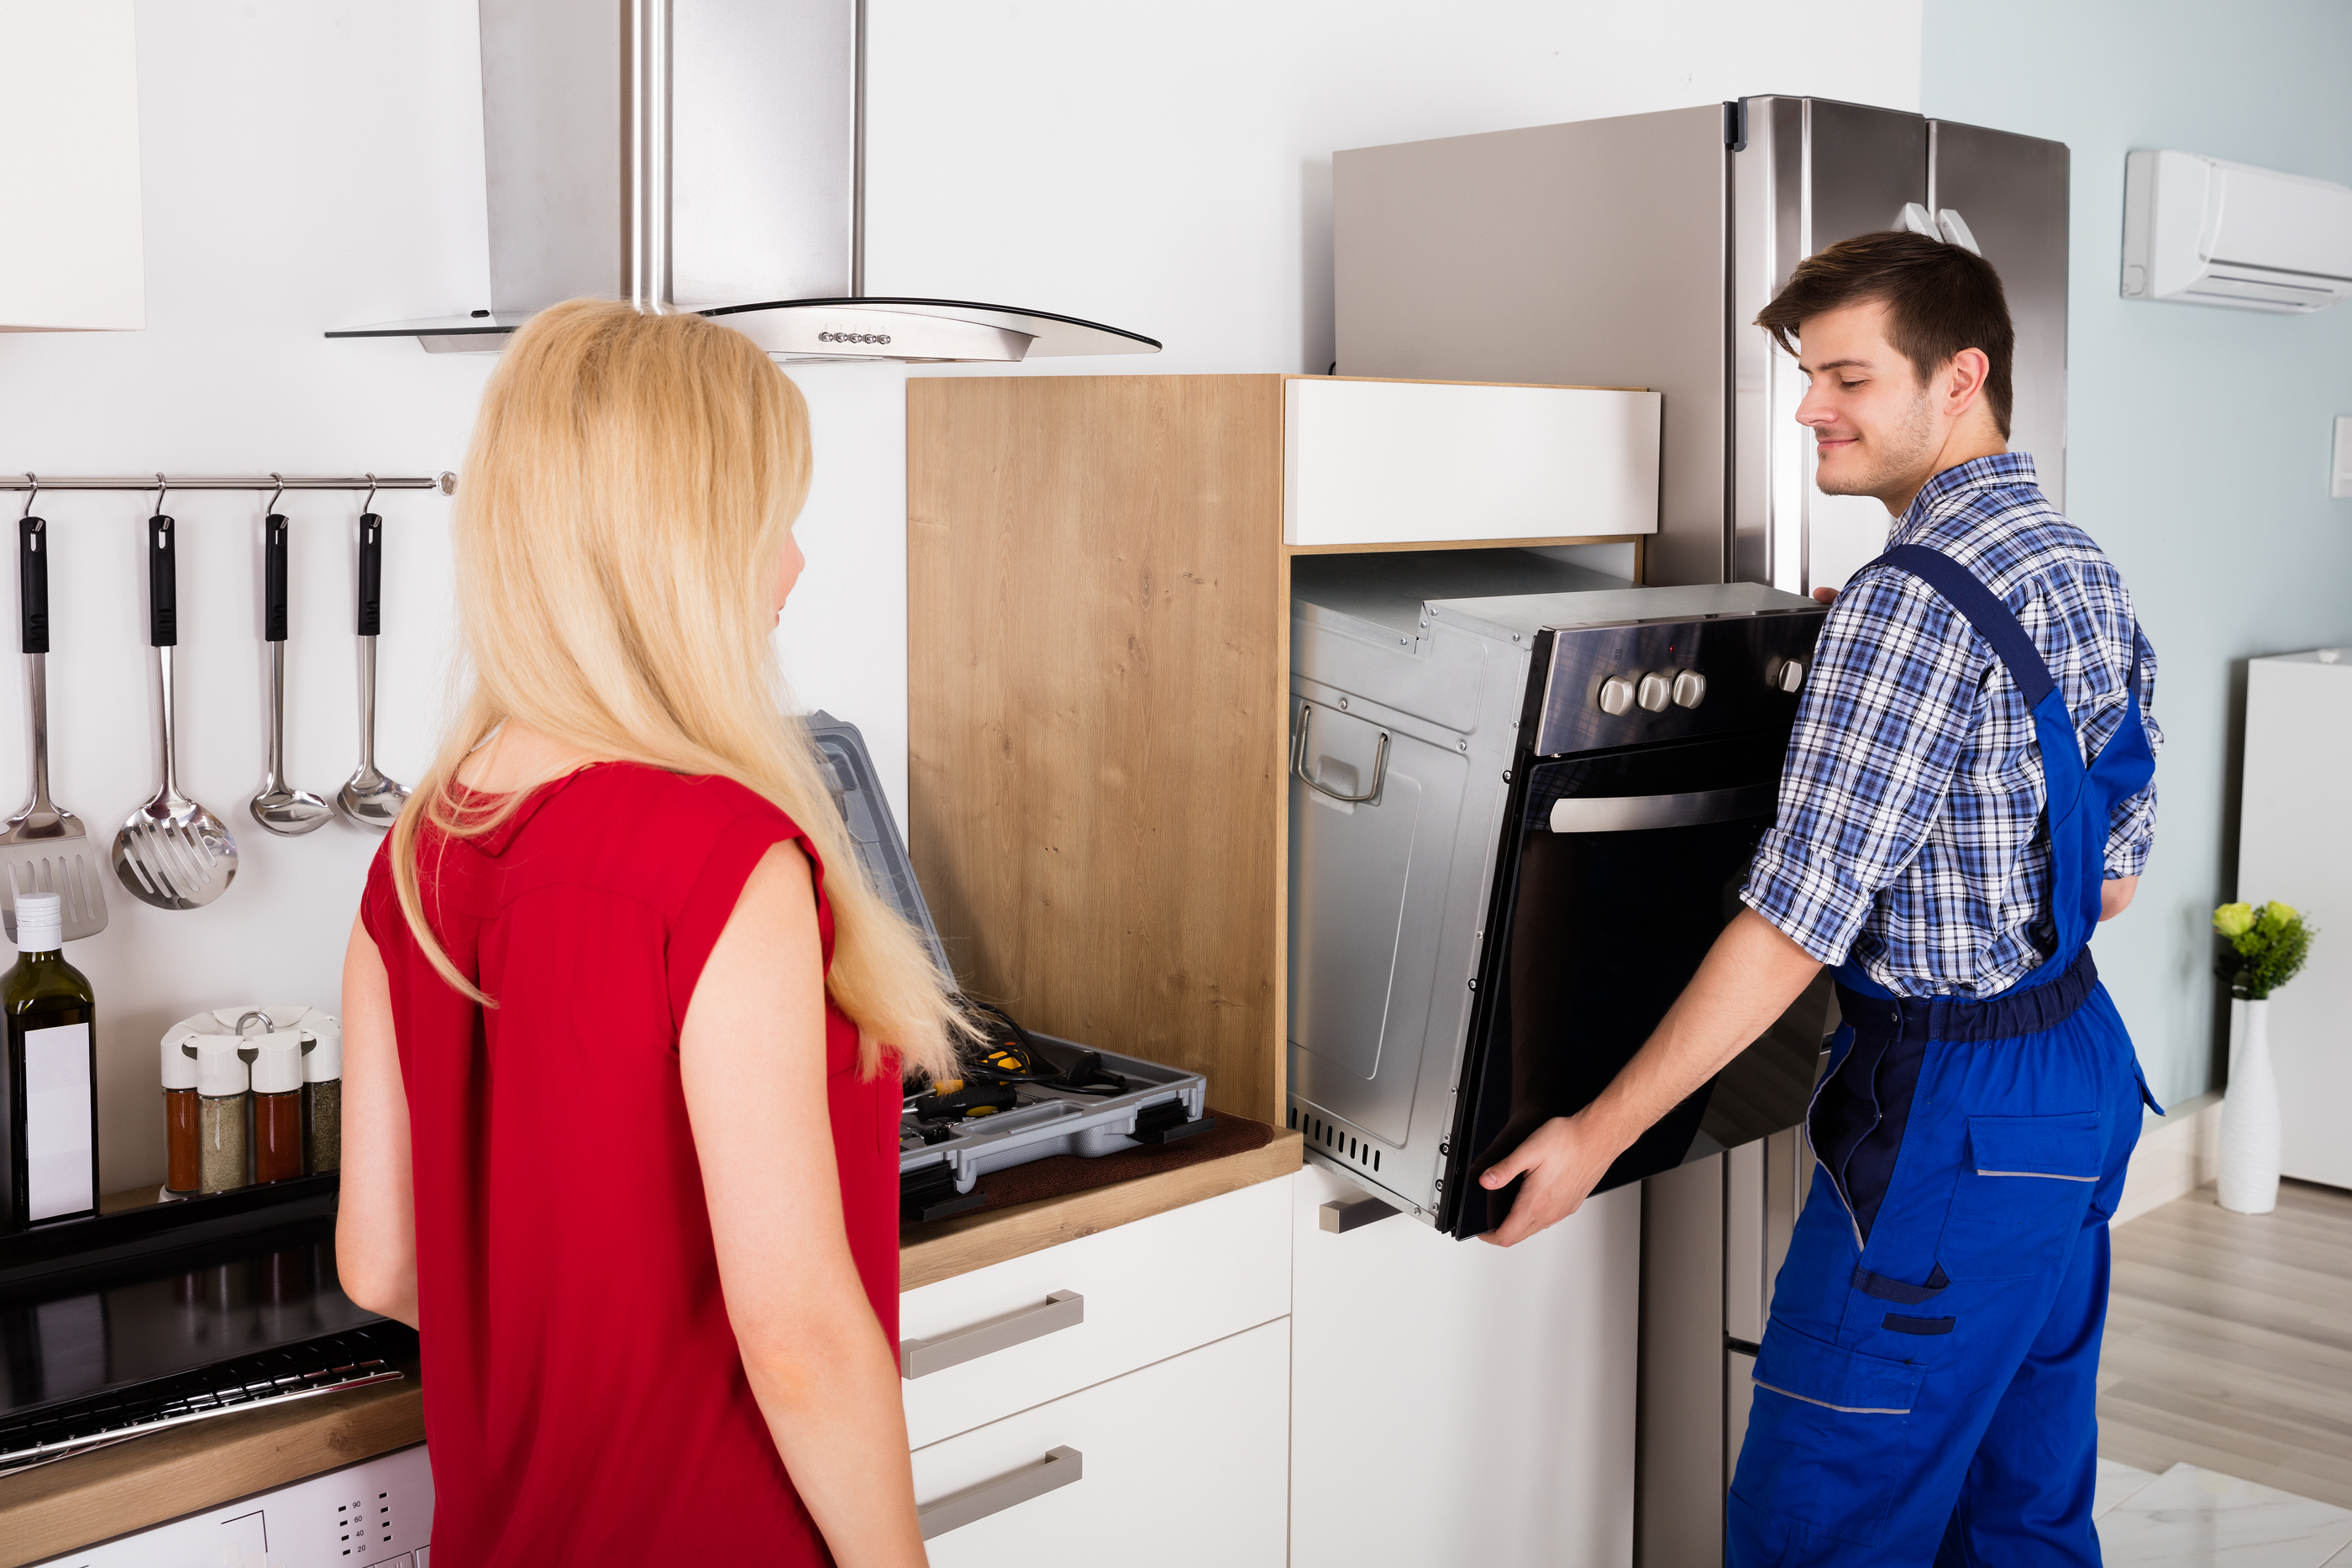 Male Worker Installing Oven For Repairing While Young Woman Standing In Kitchen